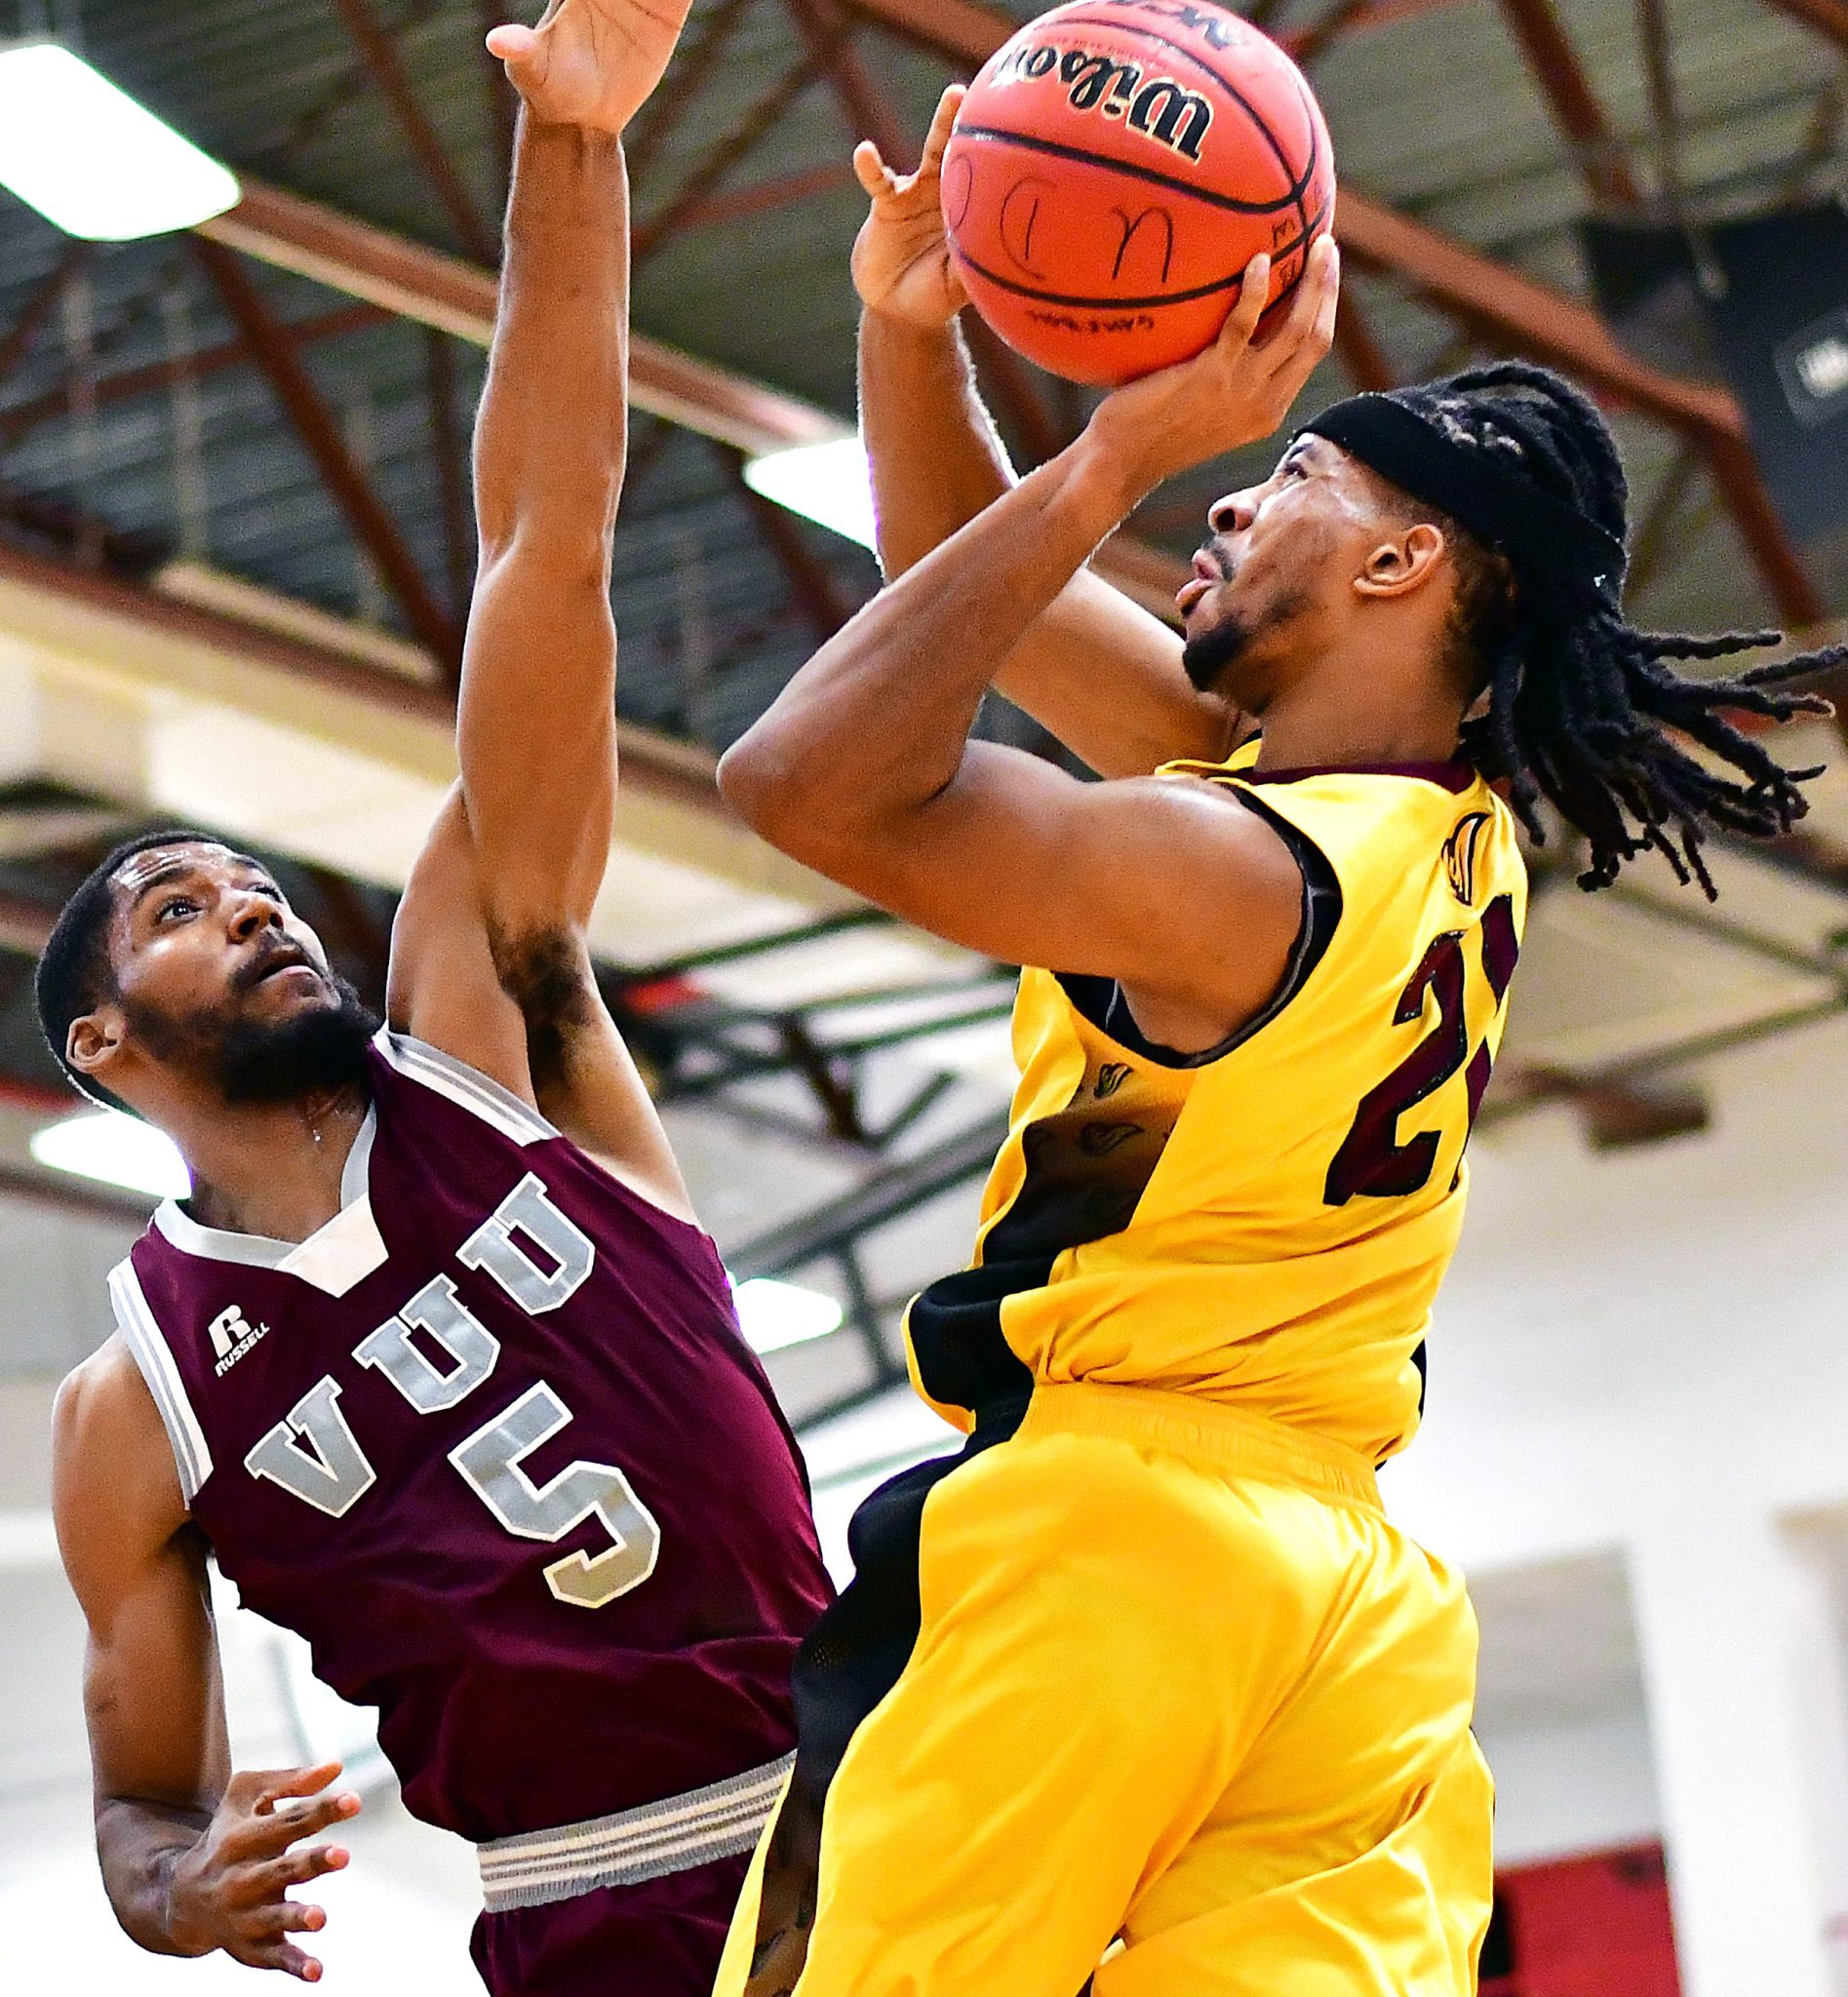 University of the District of Columbia guard Reggie Sidbury shoots over Virginia Union forward DeAndre Thomas in the first half of Virginia Union's 71-69 win at UDC Gymnasium in Northwest on Wednesday, Nov. 30. /Photo by John E. De Freitas